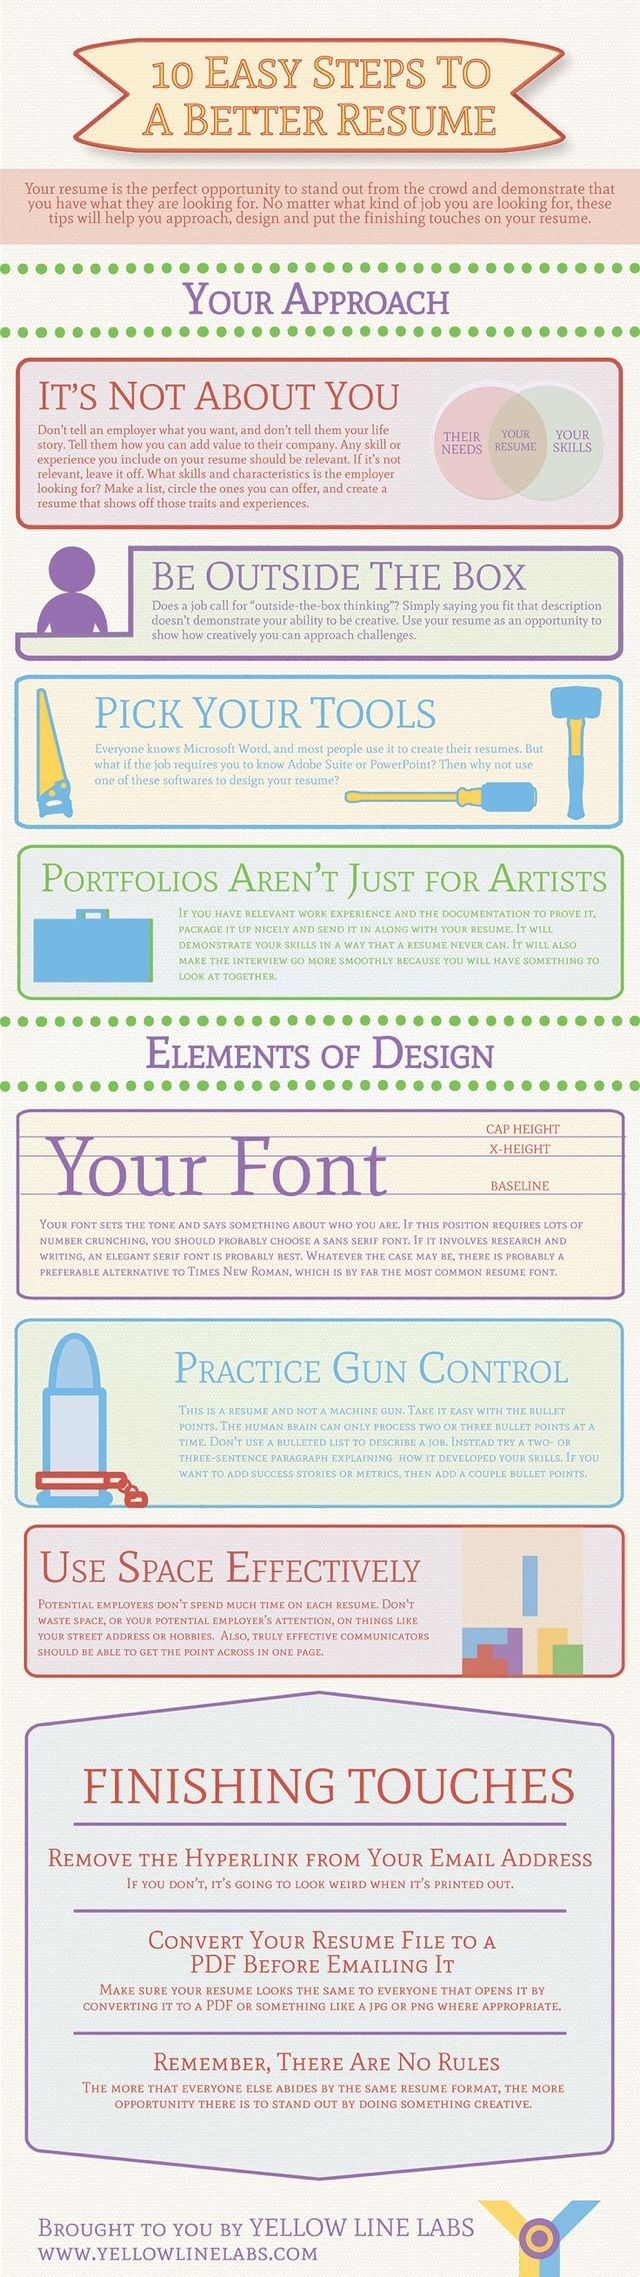 Skills To Mention On A Resume 387 Best Resumes Images On Pinterest  Resume Career And Cover .